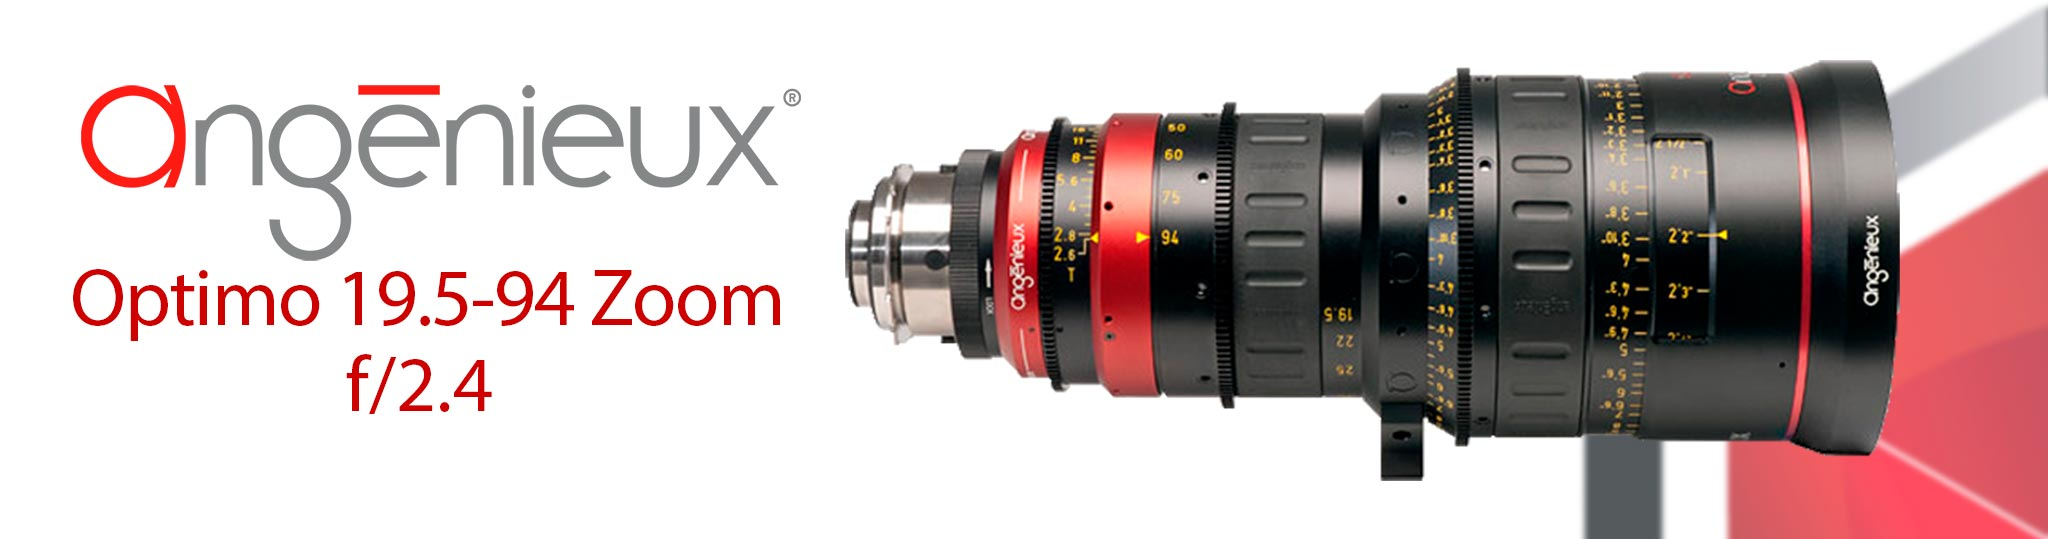 Angenieux Optimo Zoom 19.5-94